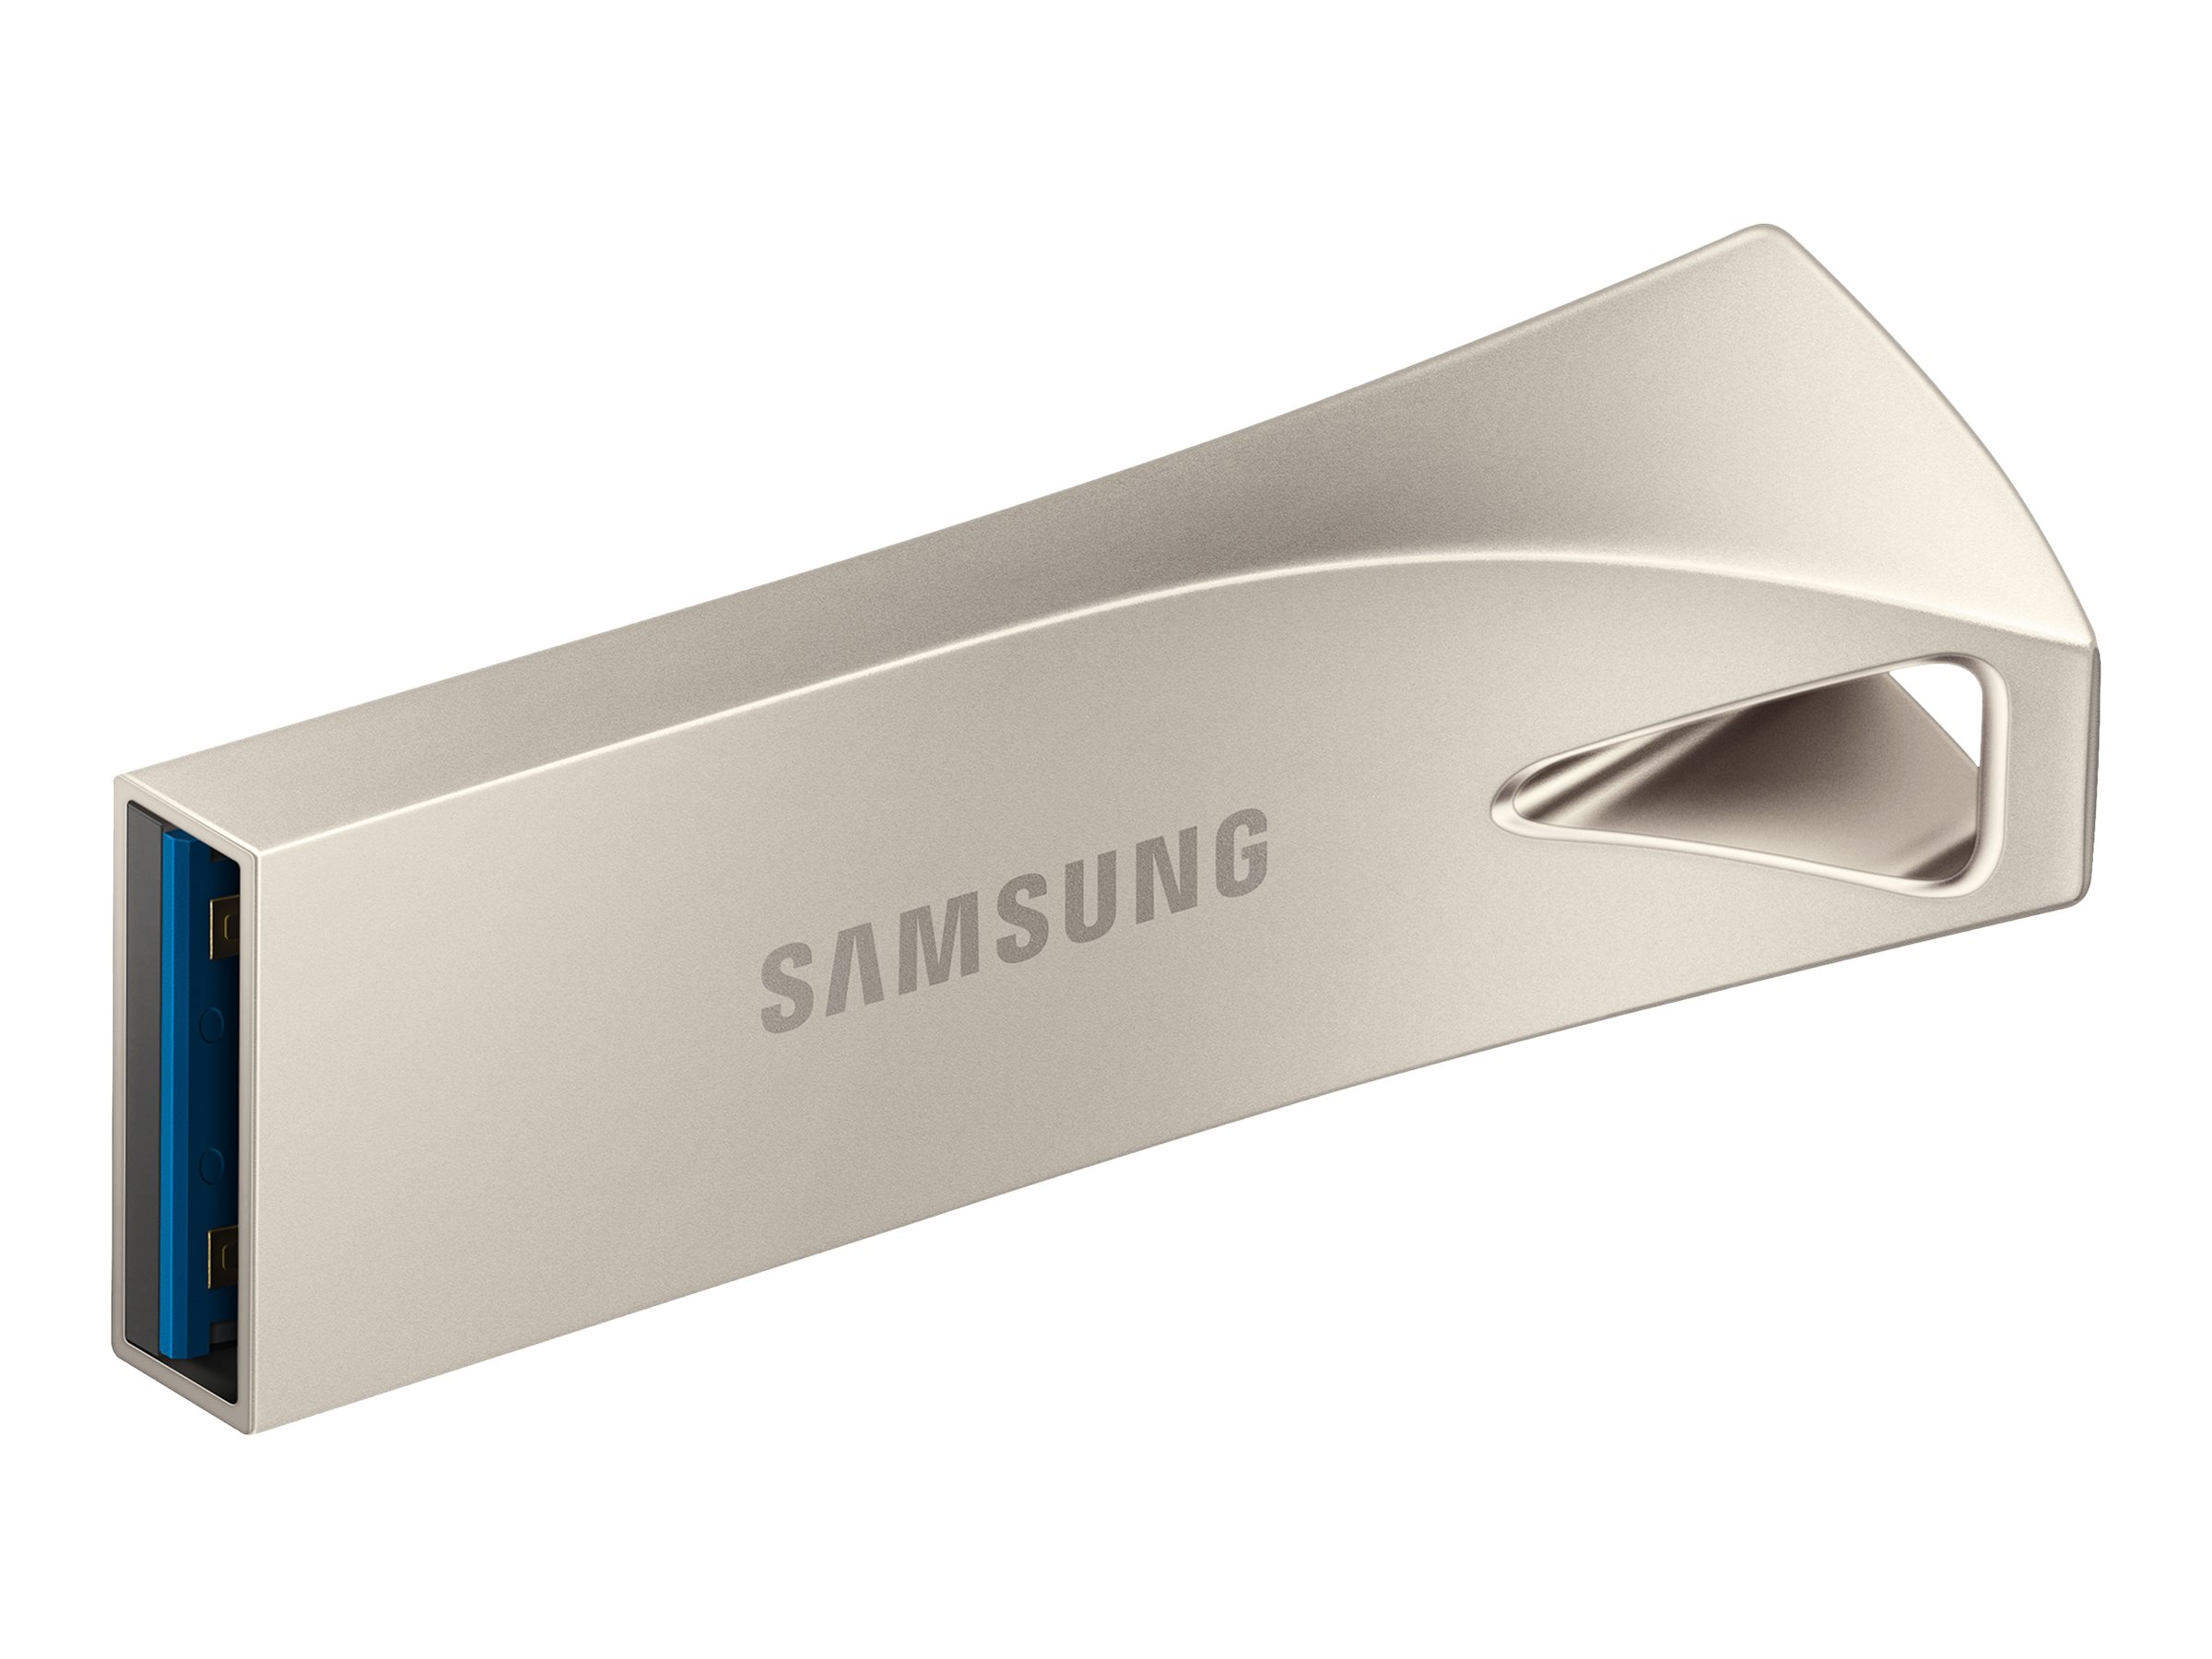 Samsung BAR Plus MUF-128BE3 - USB-Flash-Laufwerk